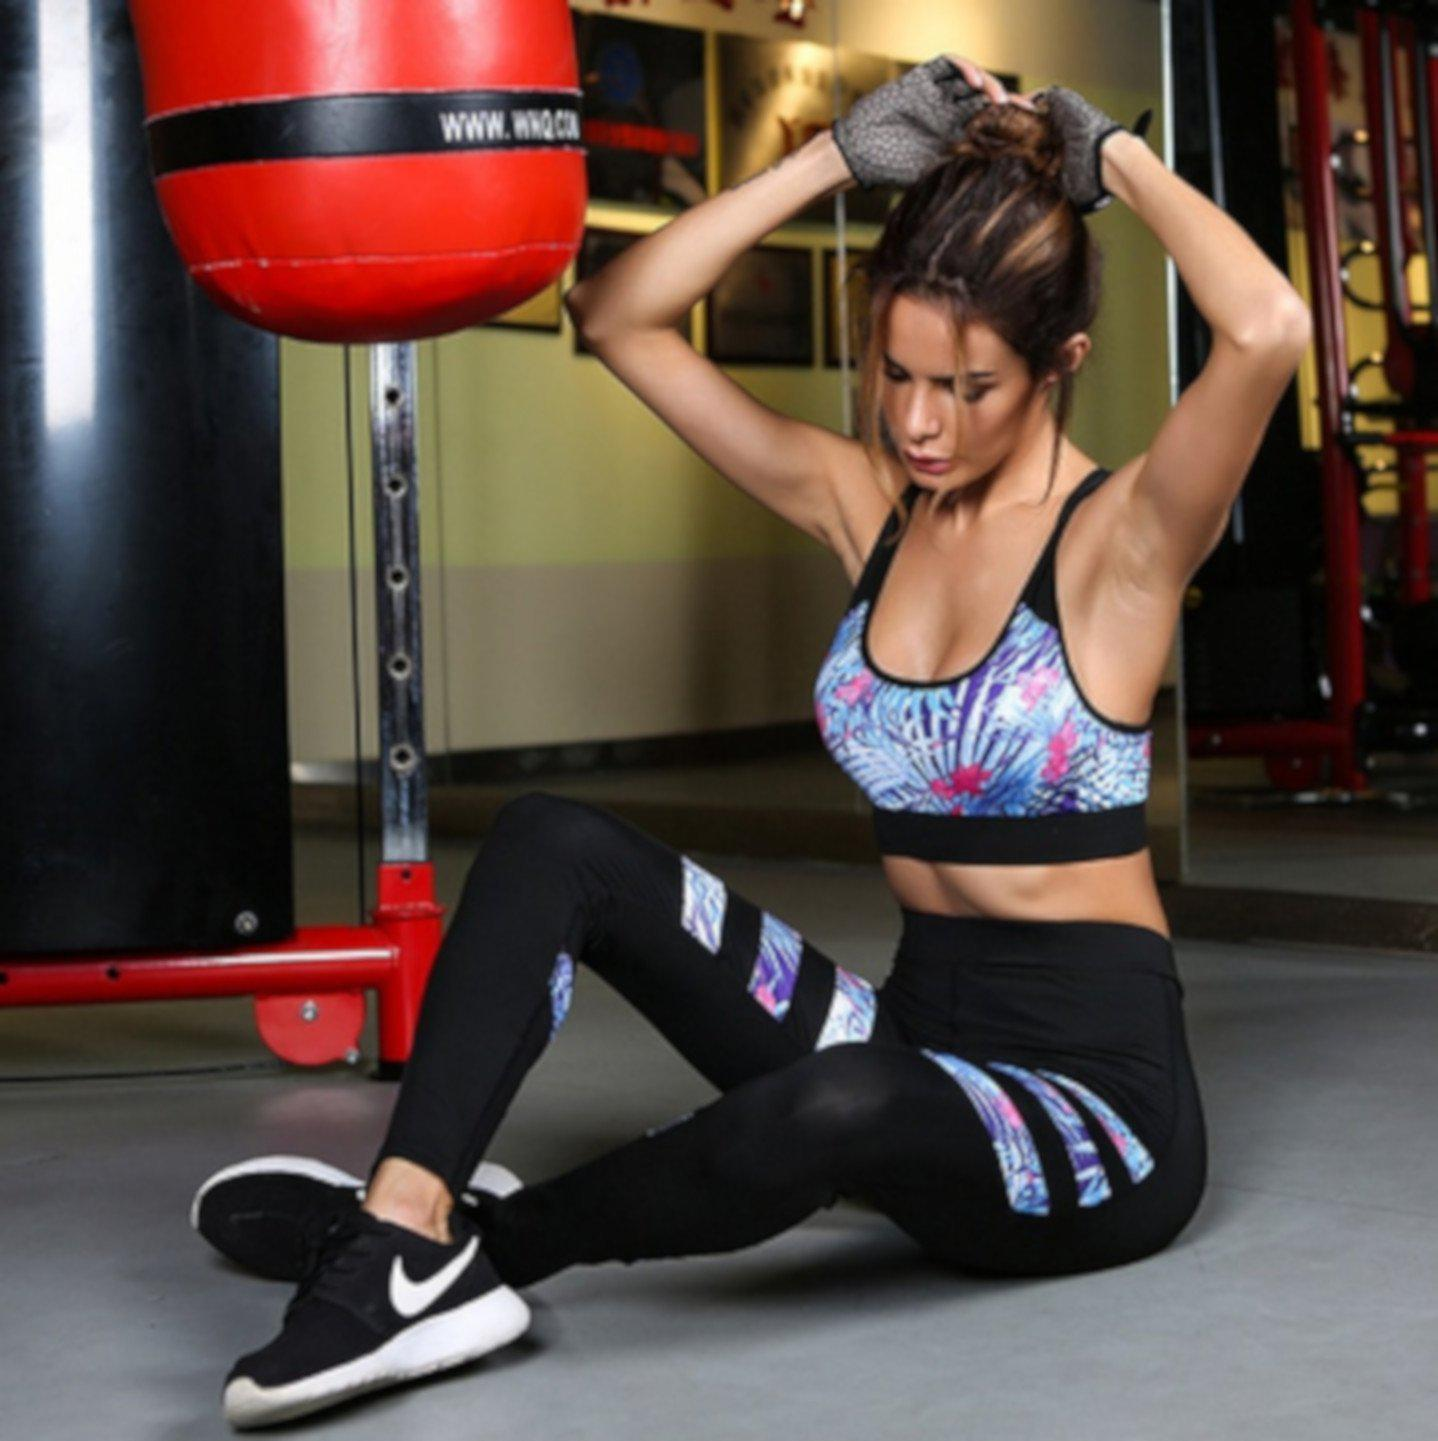 Womens Sexy Black & Blue Two Piece Workout Leggings Sports Bra Set Small / Blue Leggings Edgy Couture